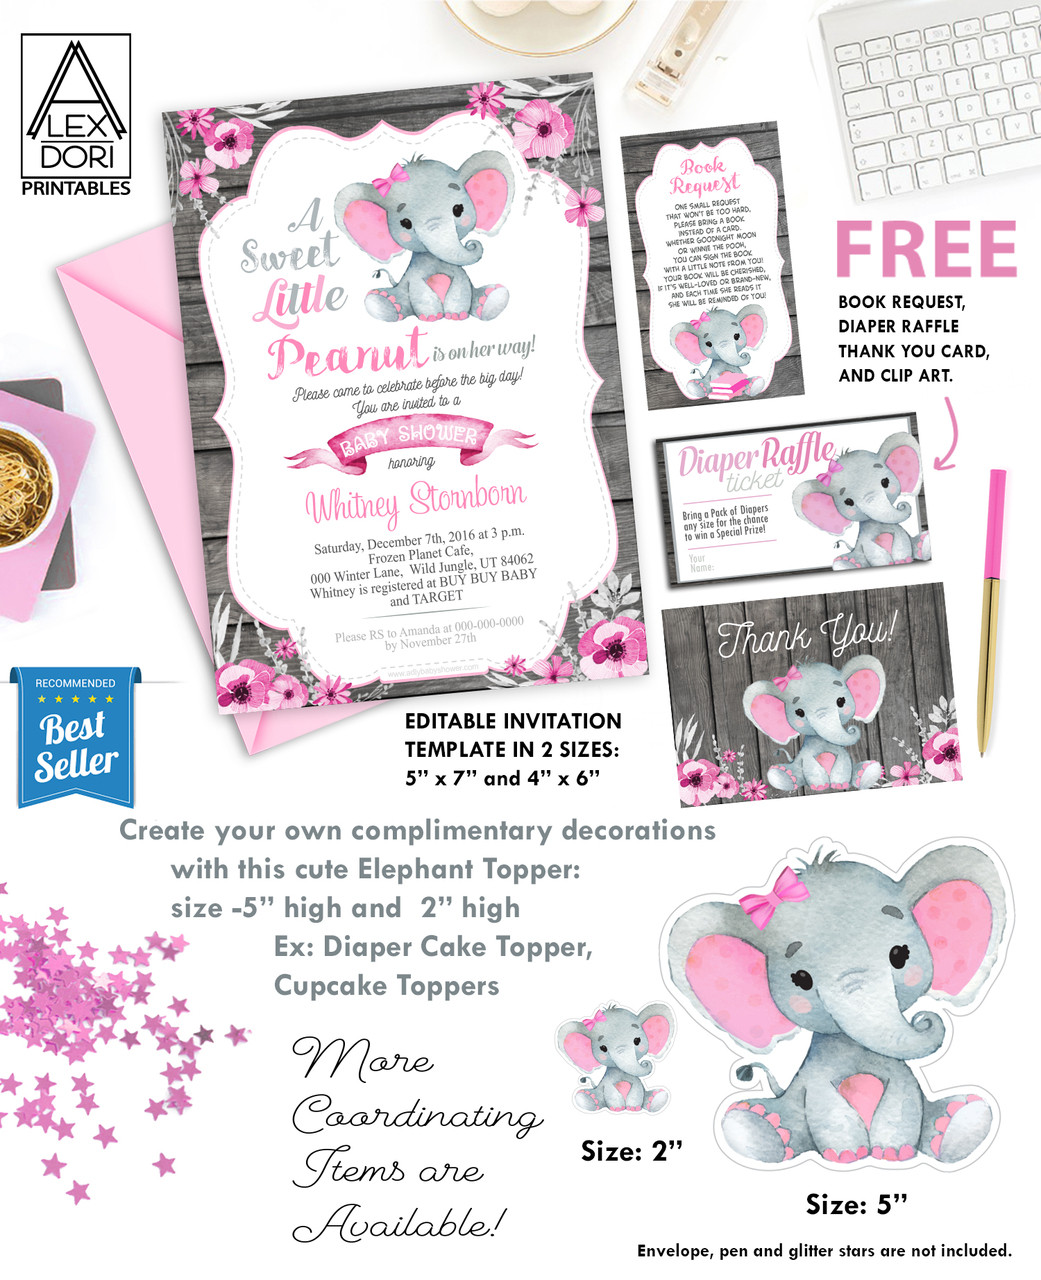 photo regarding Free Printable Elephant Baby Shower named Woman Elephant crimson and grey Child Shower Invitation, Picket Historical past -Printable Invitation - Peanut Invite-Female Youngster Shower-Cost-free Diaper Raffle